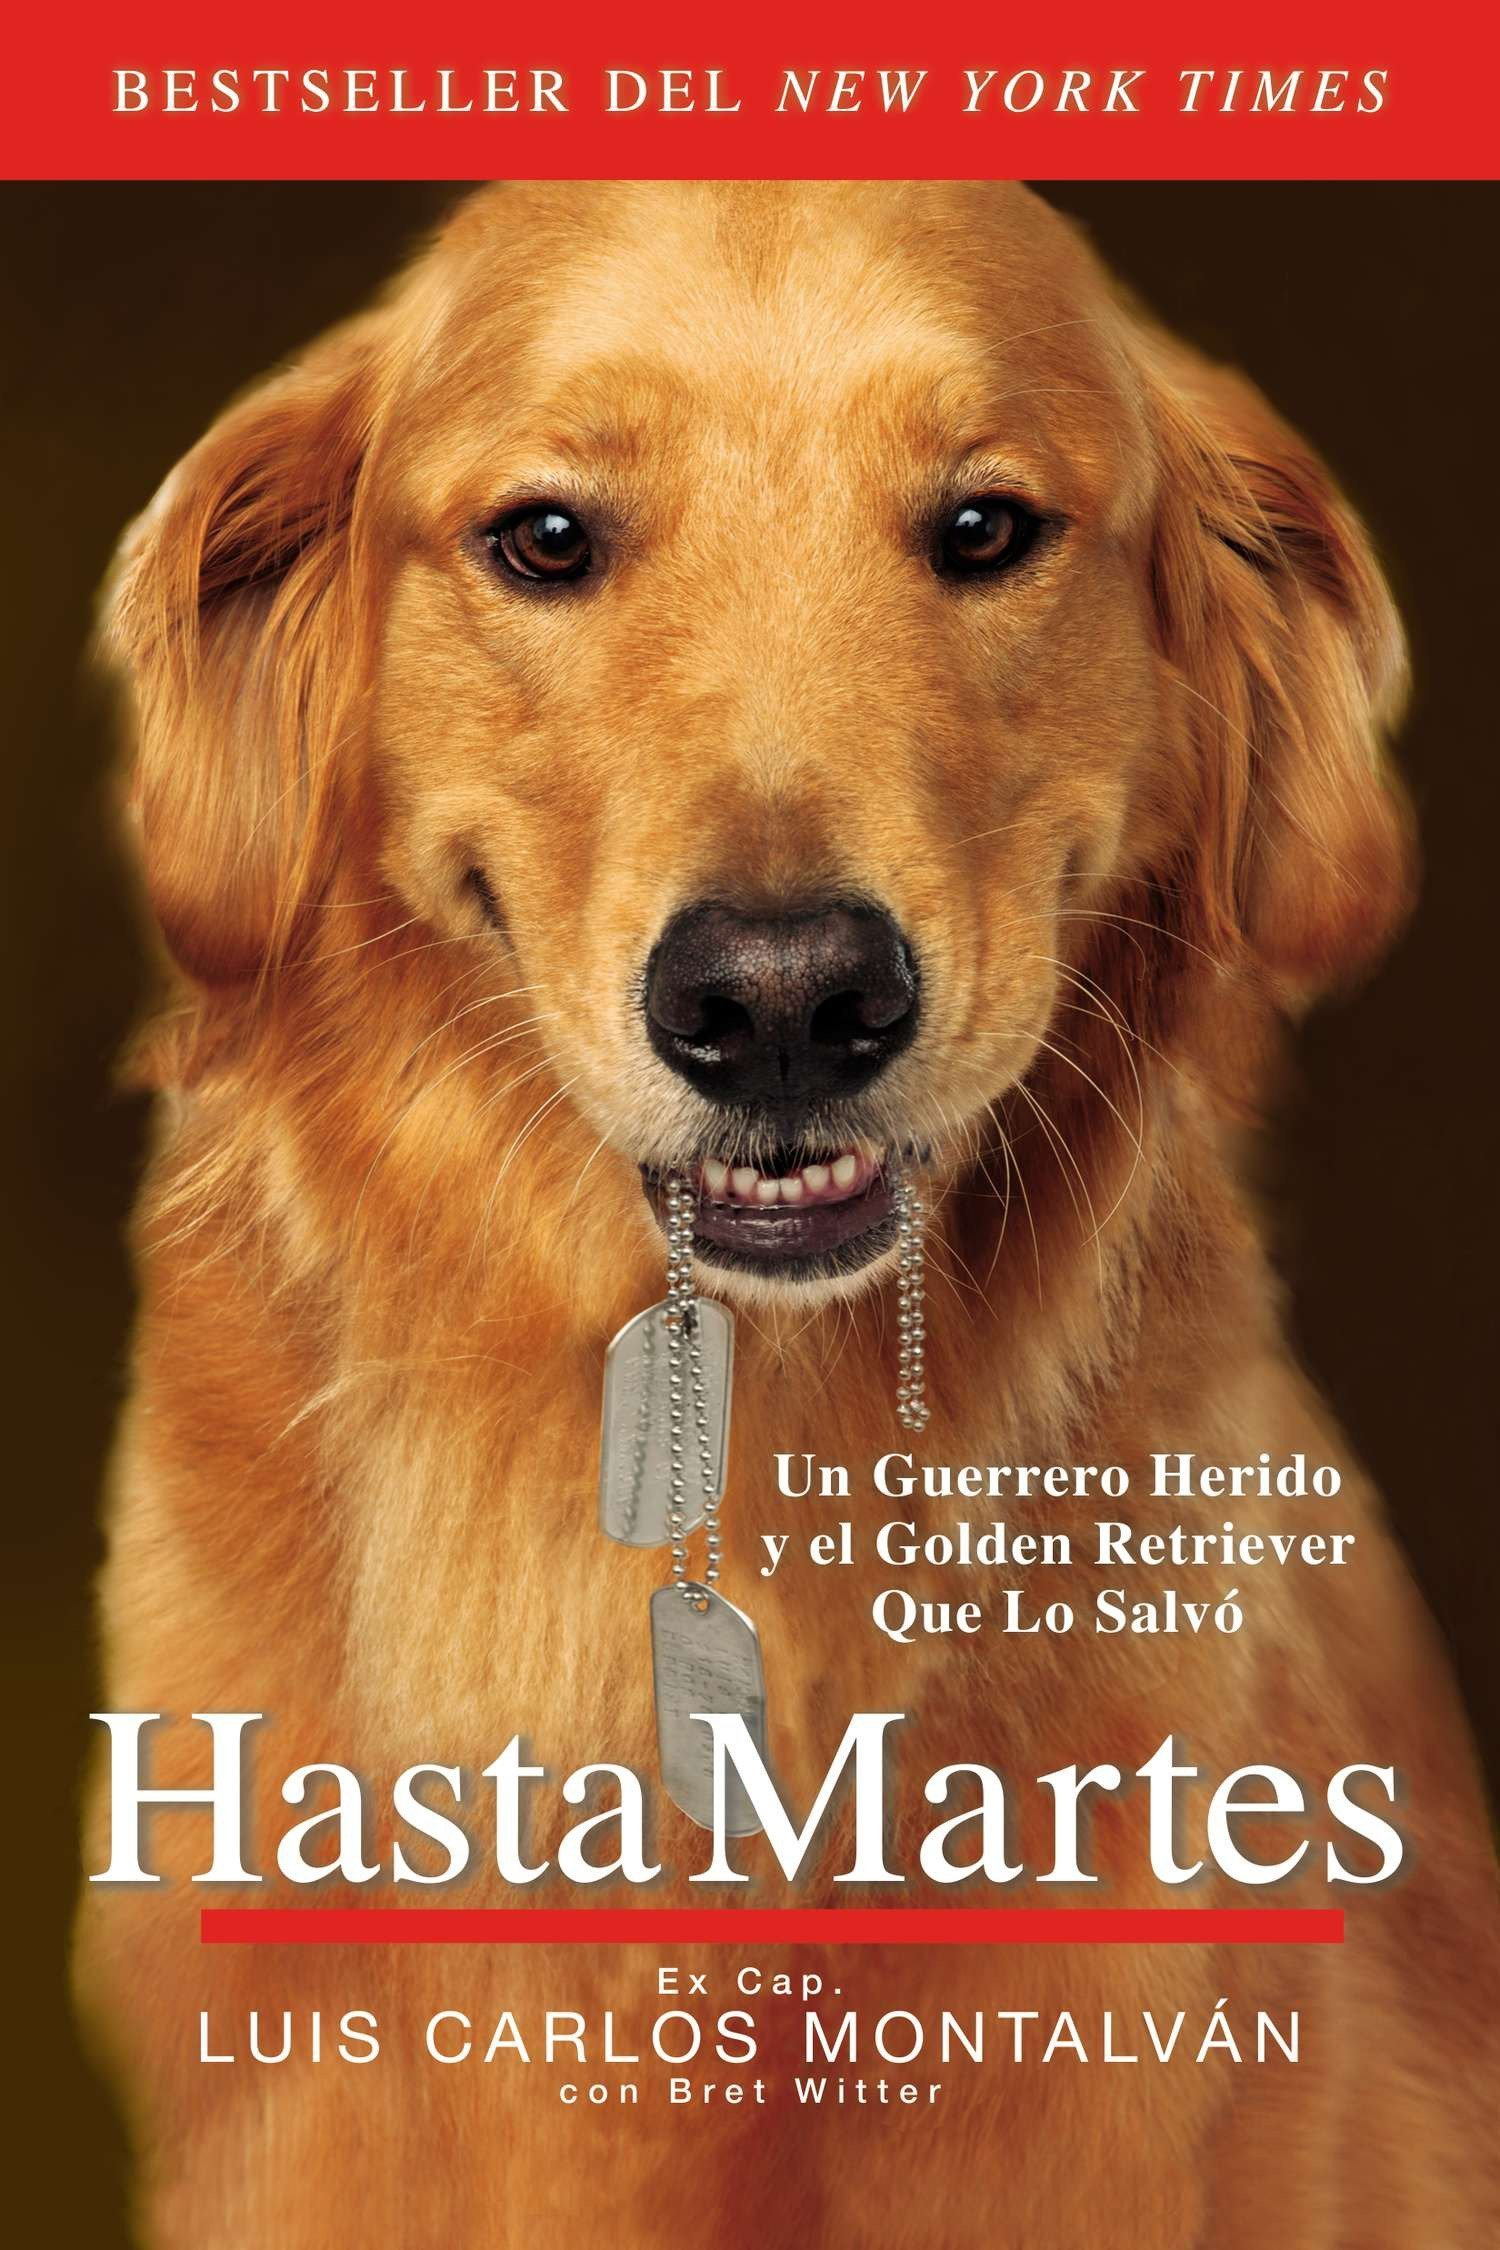 Hasta Martes (Spanish Edition) (Spanish) Paperback – July 30, 2014